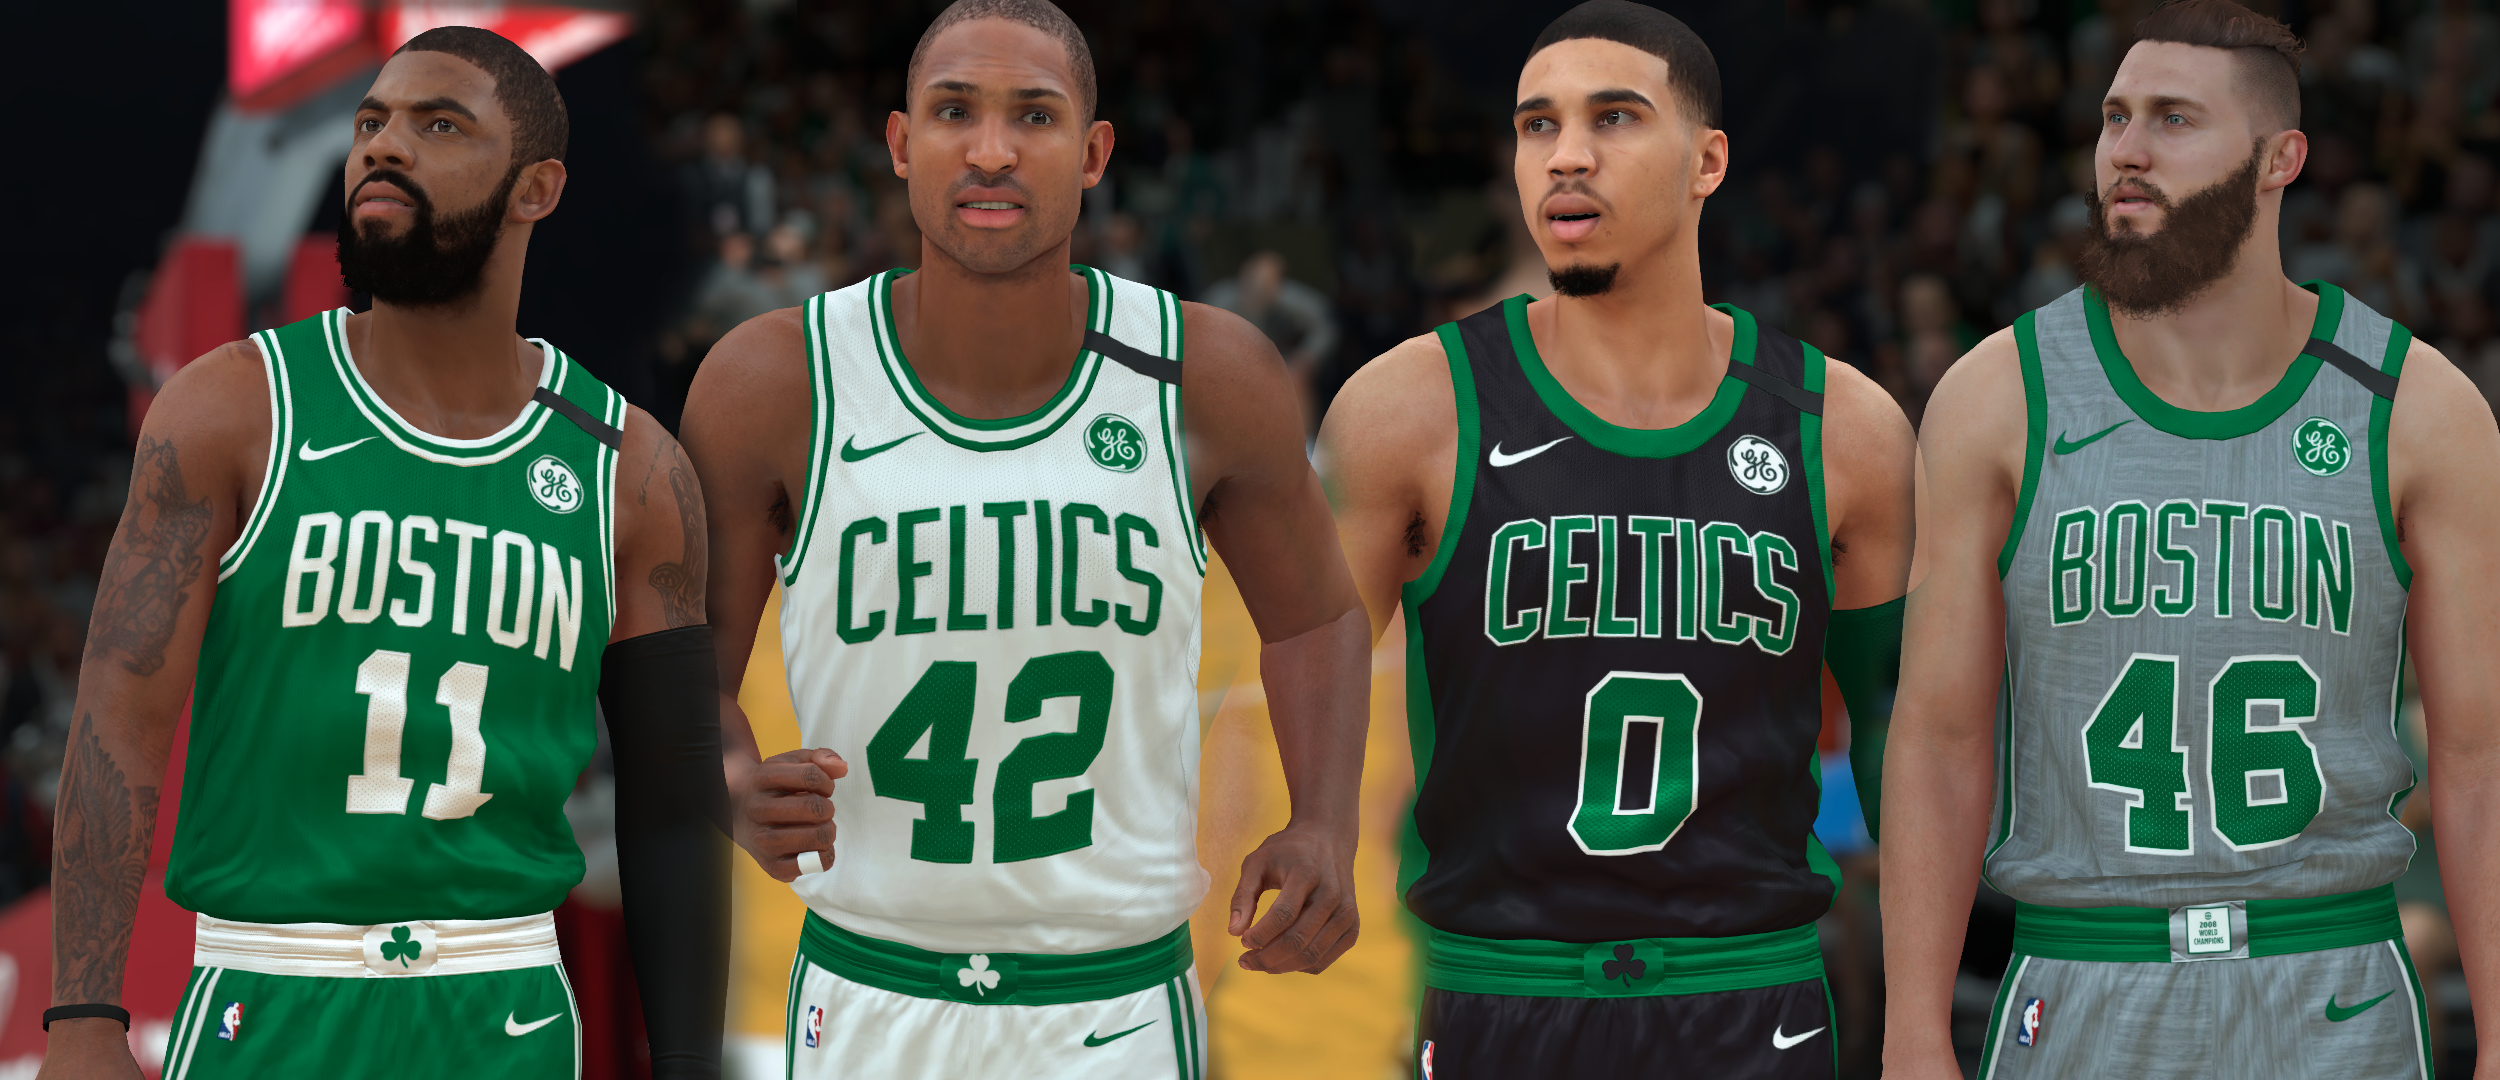 Boston Celtics Jersey with Blackstripe (pinoy21)